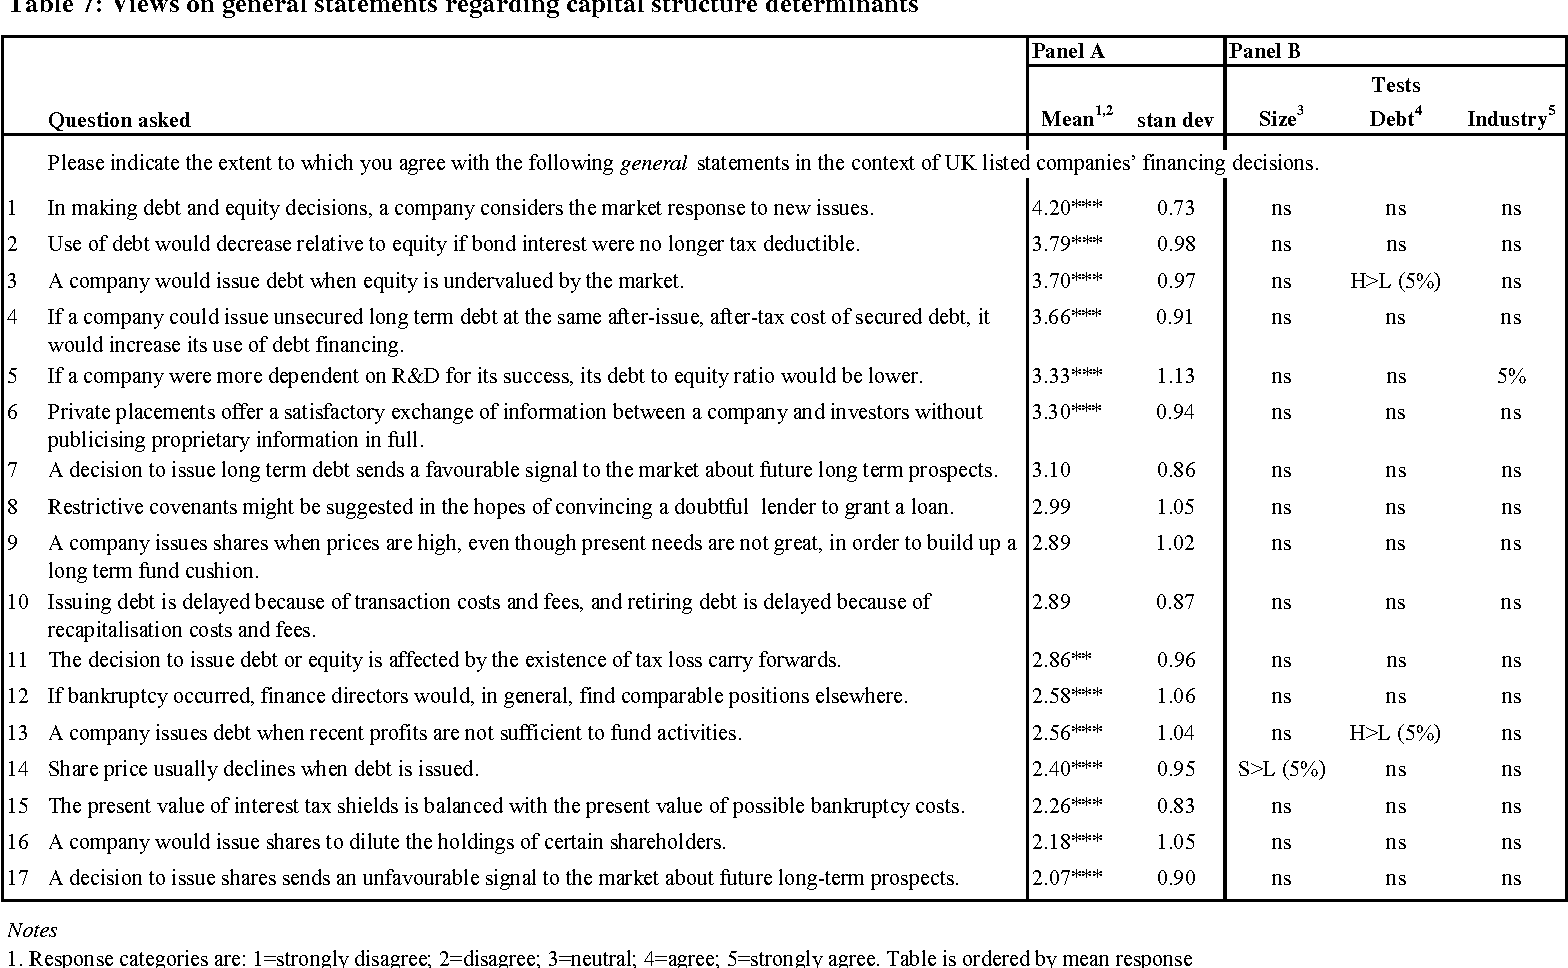 Table 7 Views On General Statements Regarding Capital Structure Determinants